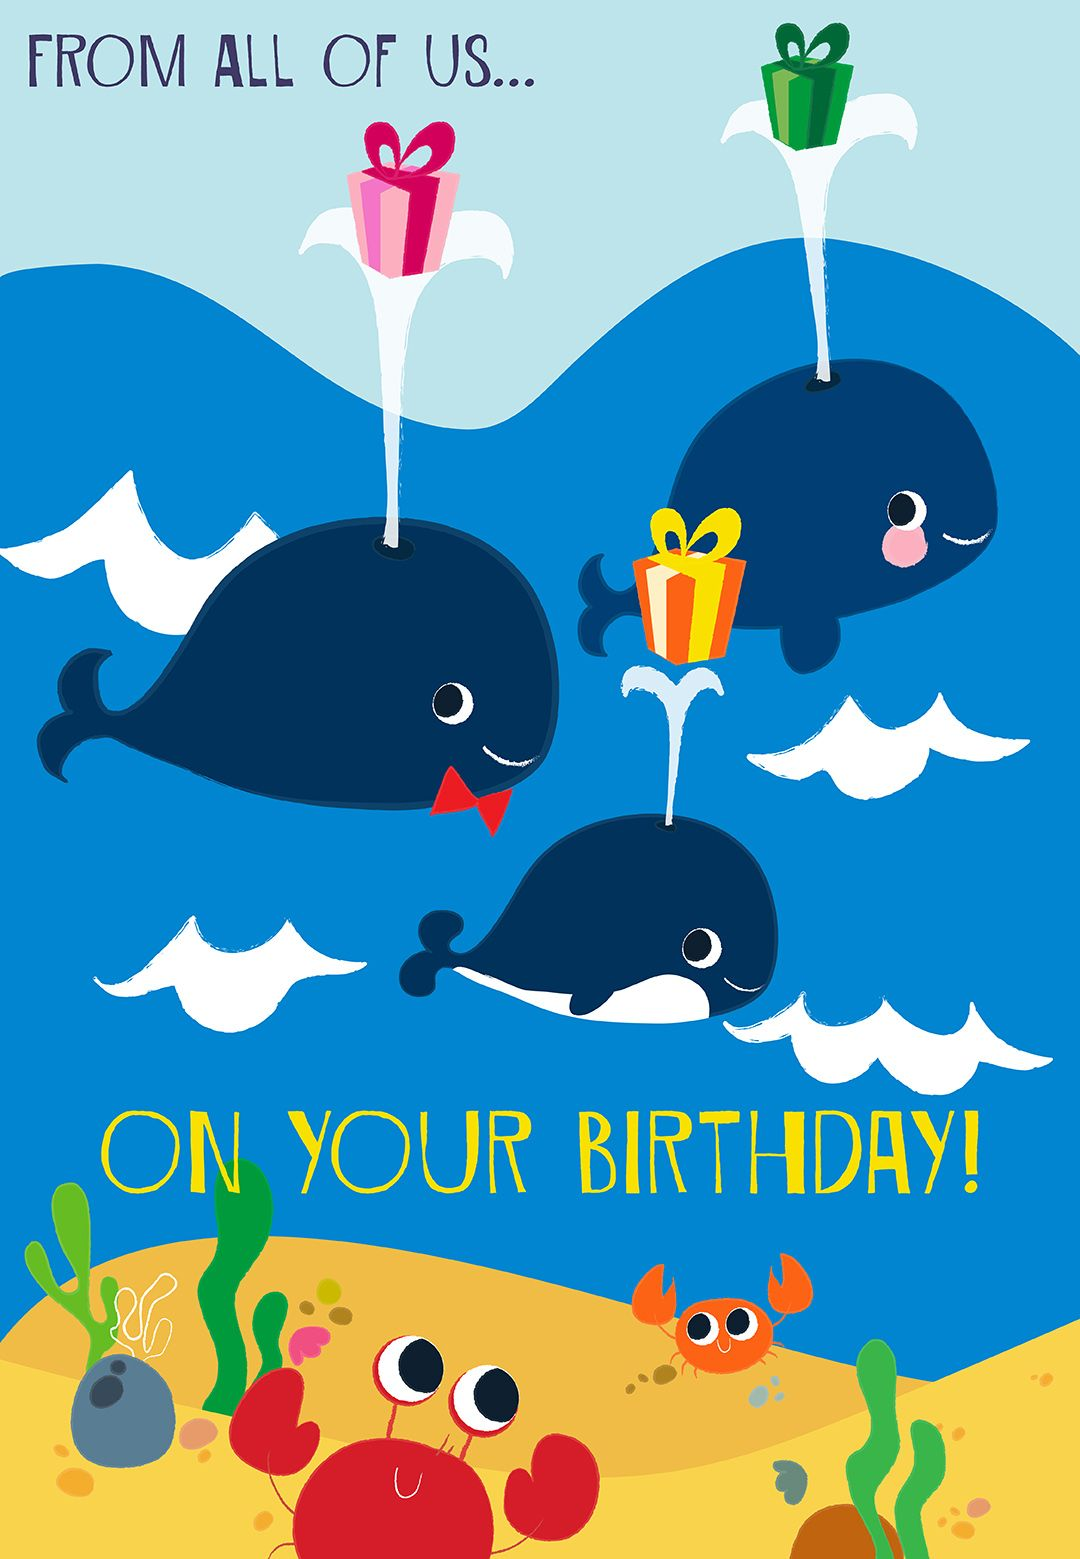 cute beach themed greeting card printable for birthdays by greetings island via greetingisland. Black Bedroom Furniture Sets. Home Design Ideas